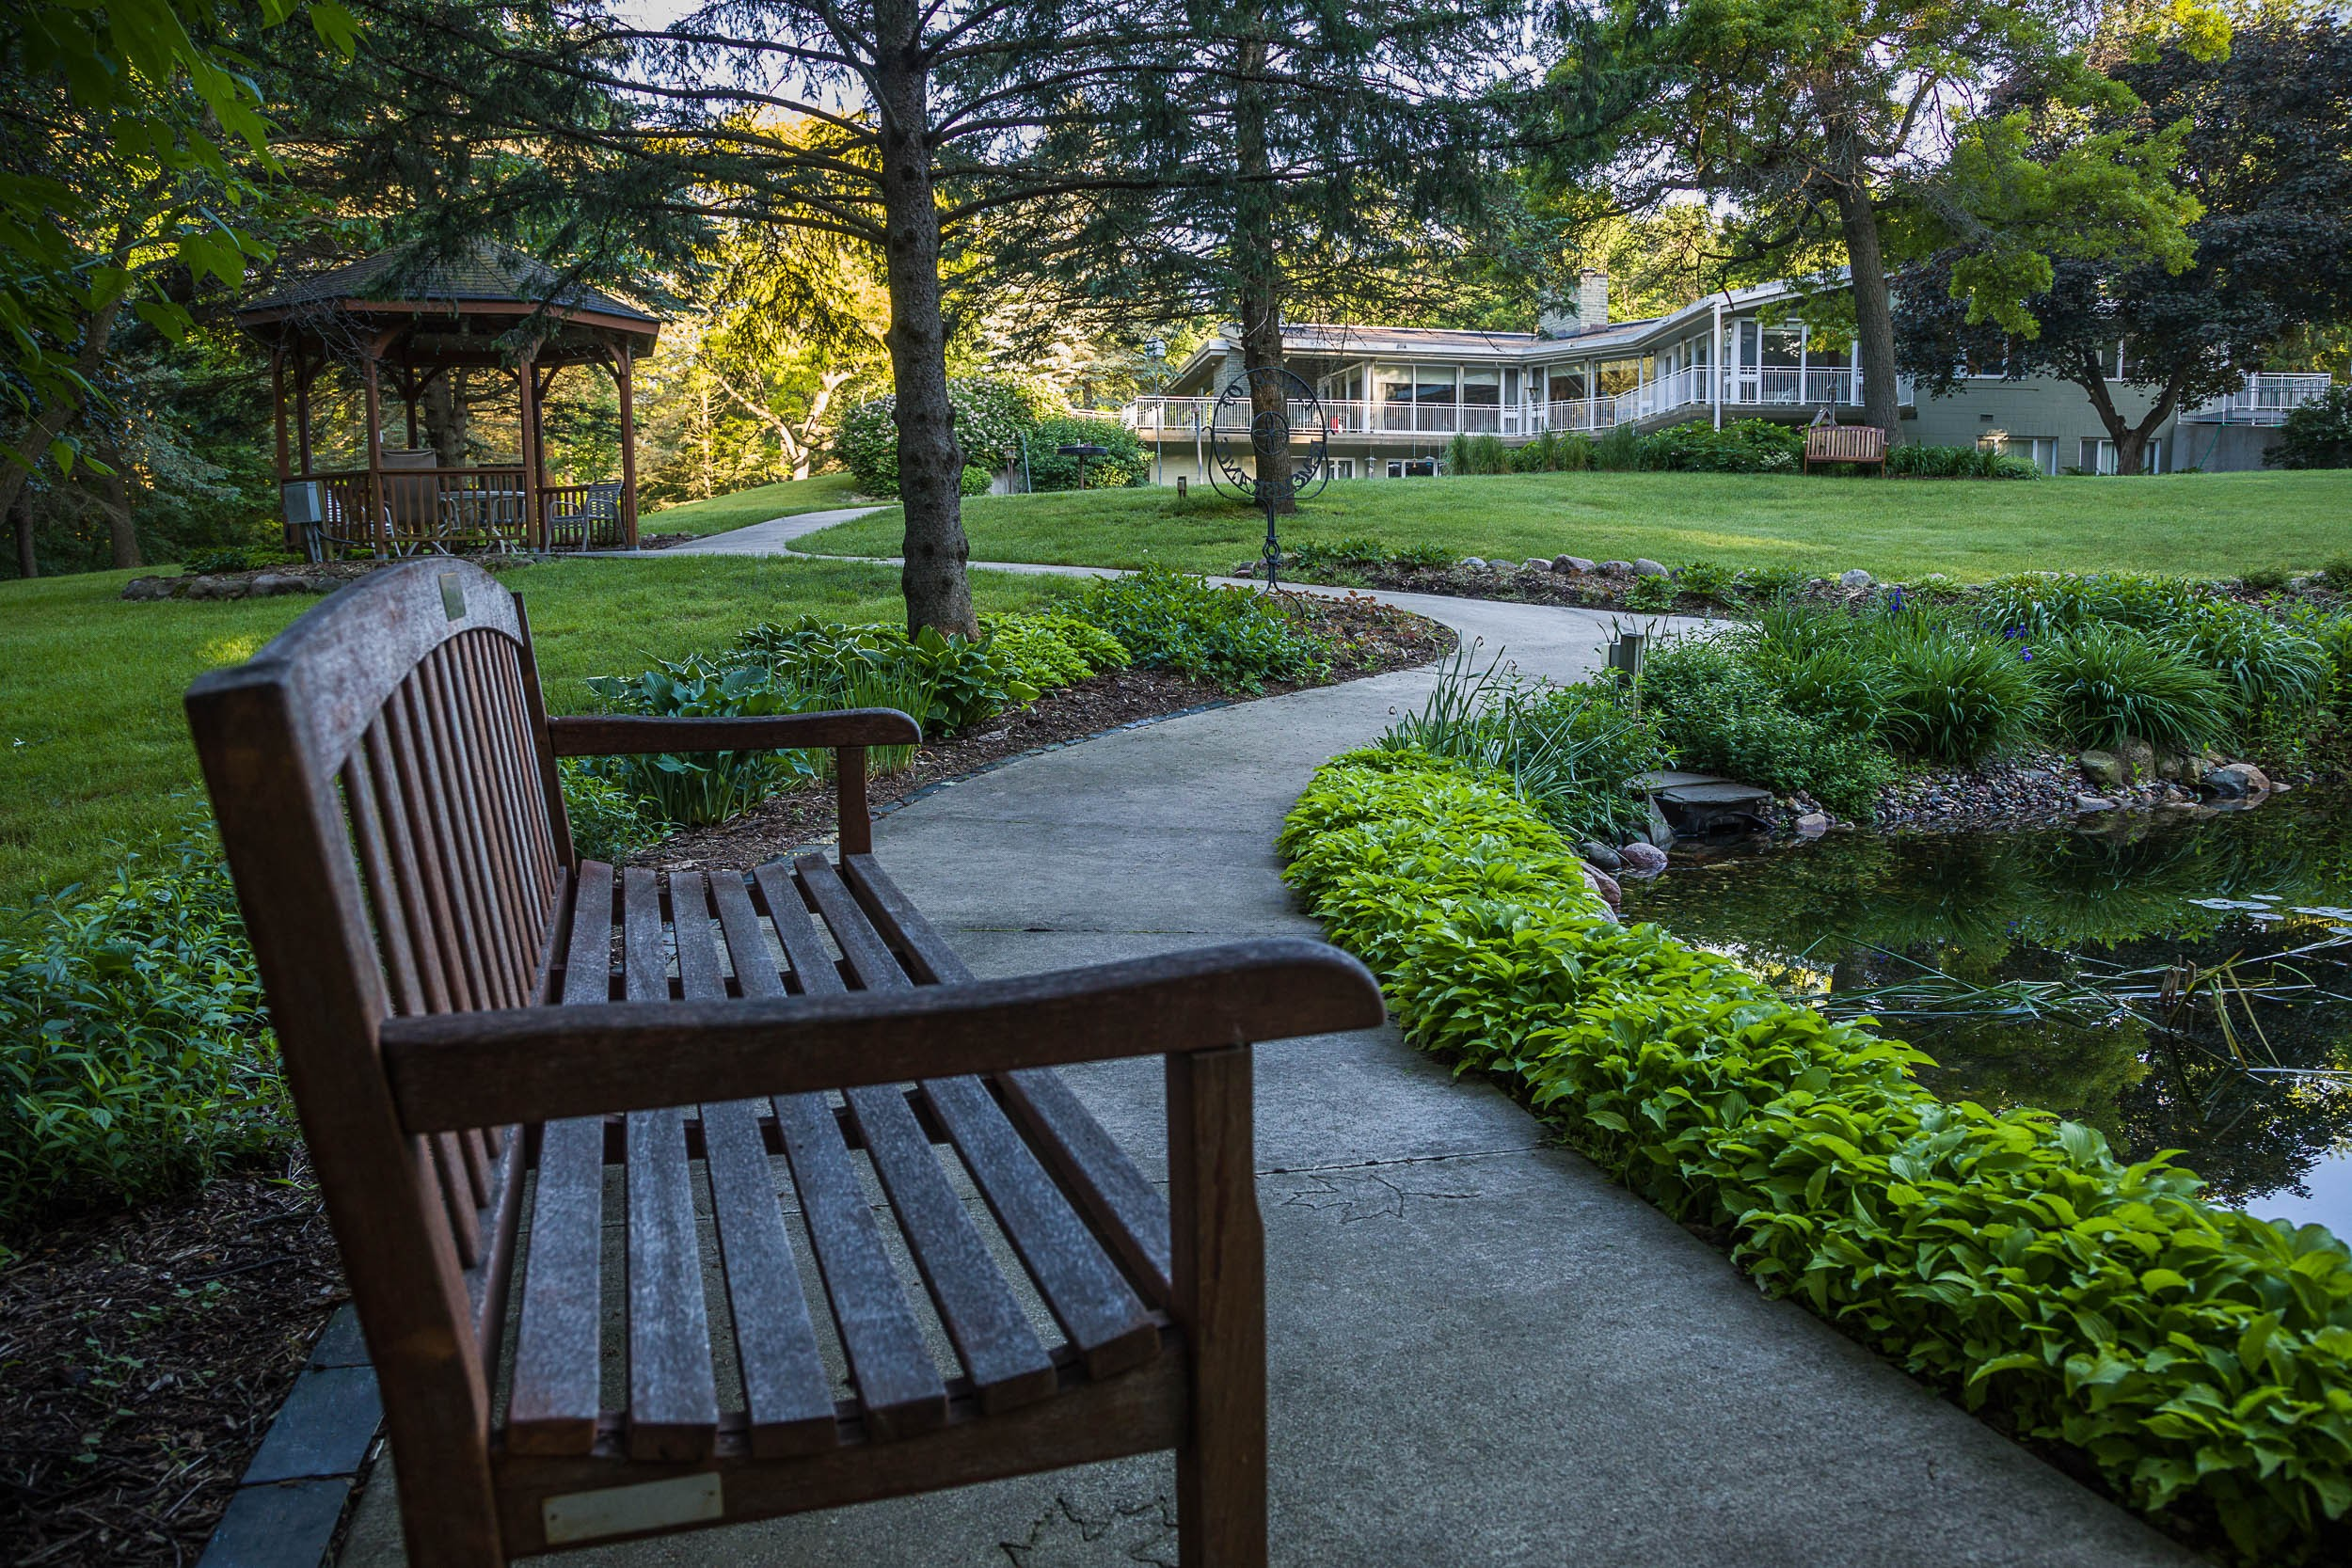 Carolyn Piepho - Bench by pond at house.jpg